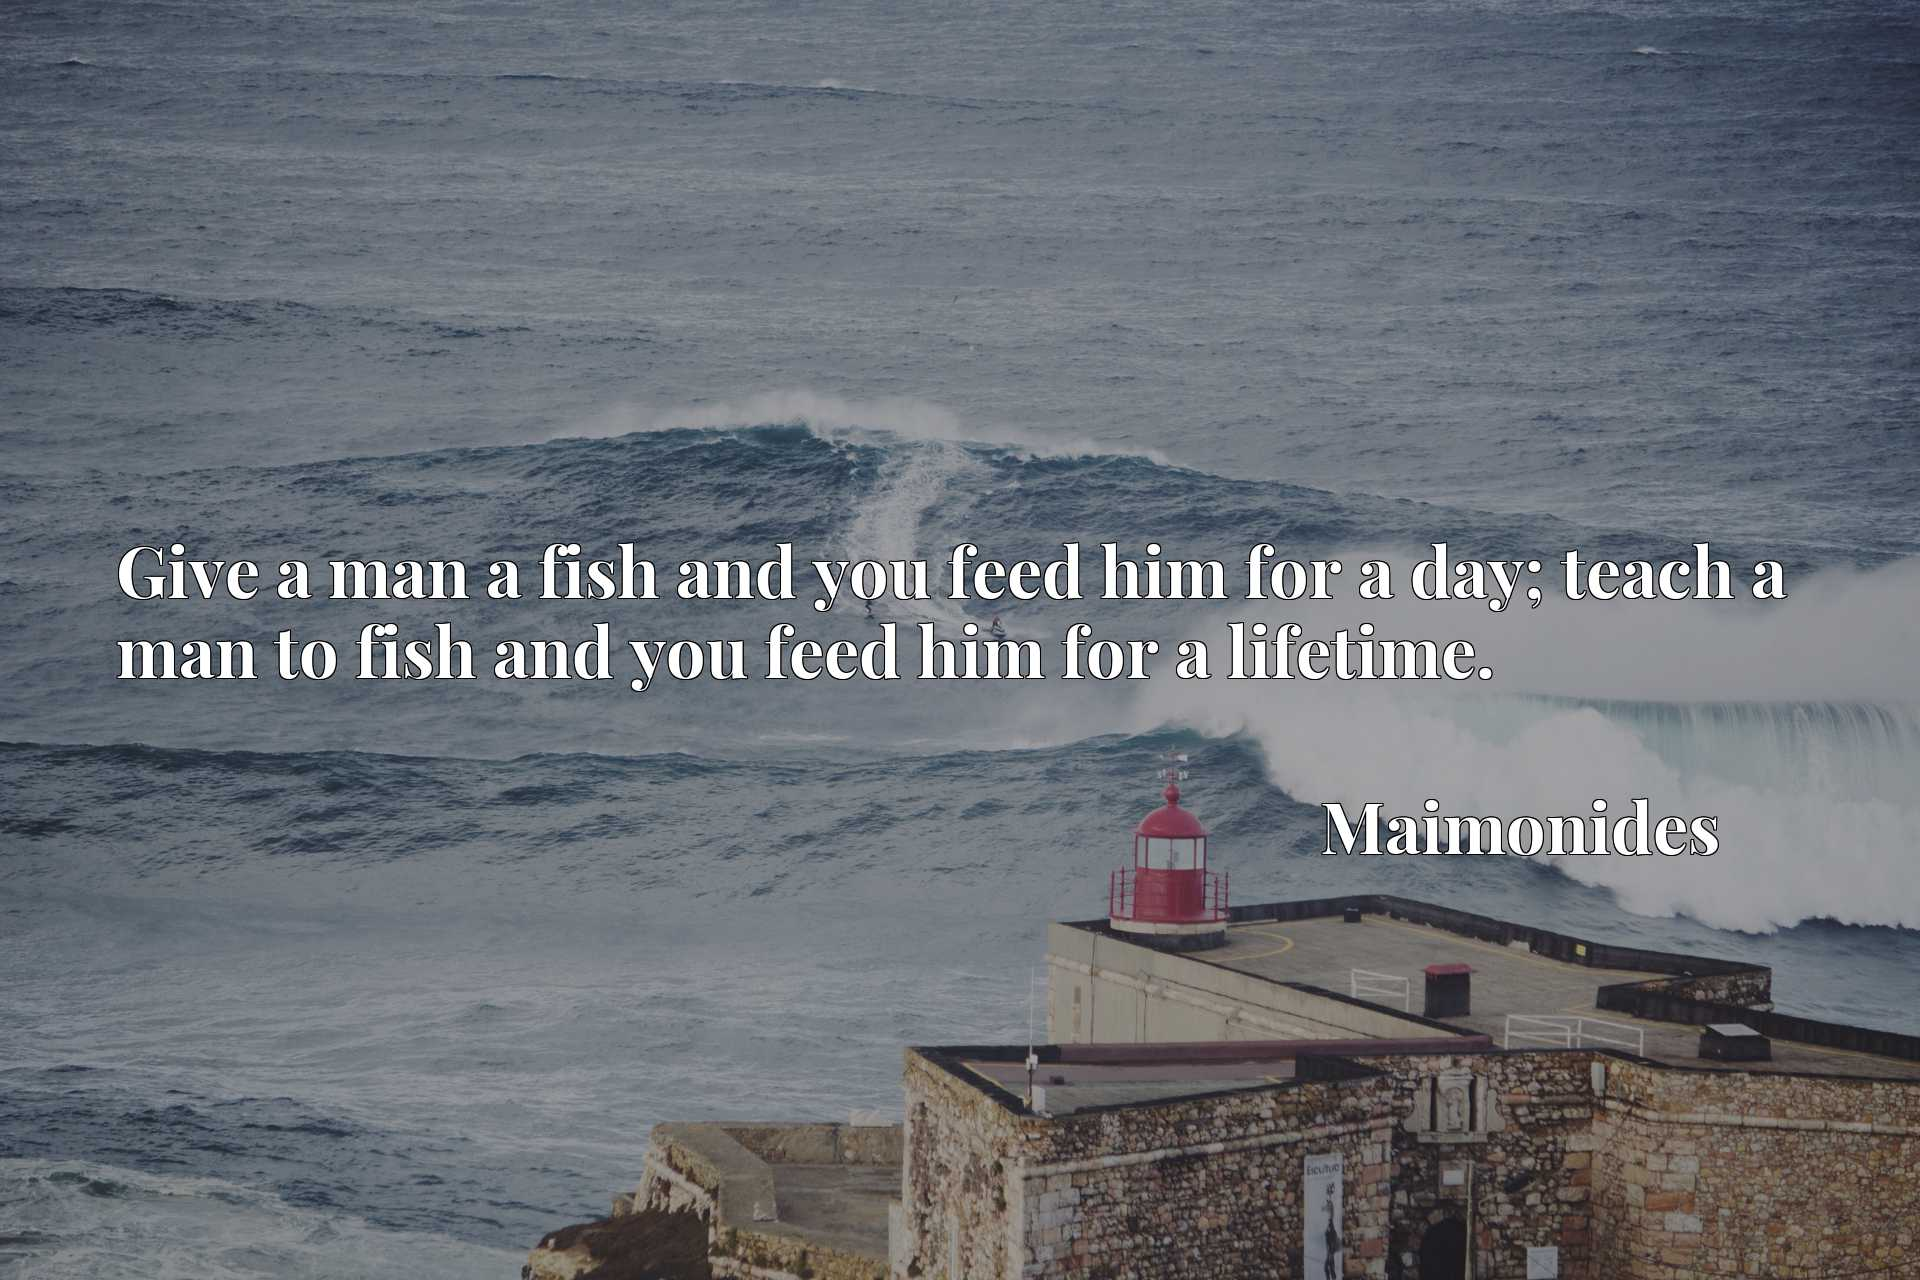 Give a man a fish and you feed him for a day; teach a man to fish and you feed him for a lifetime.